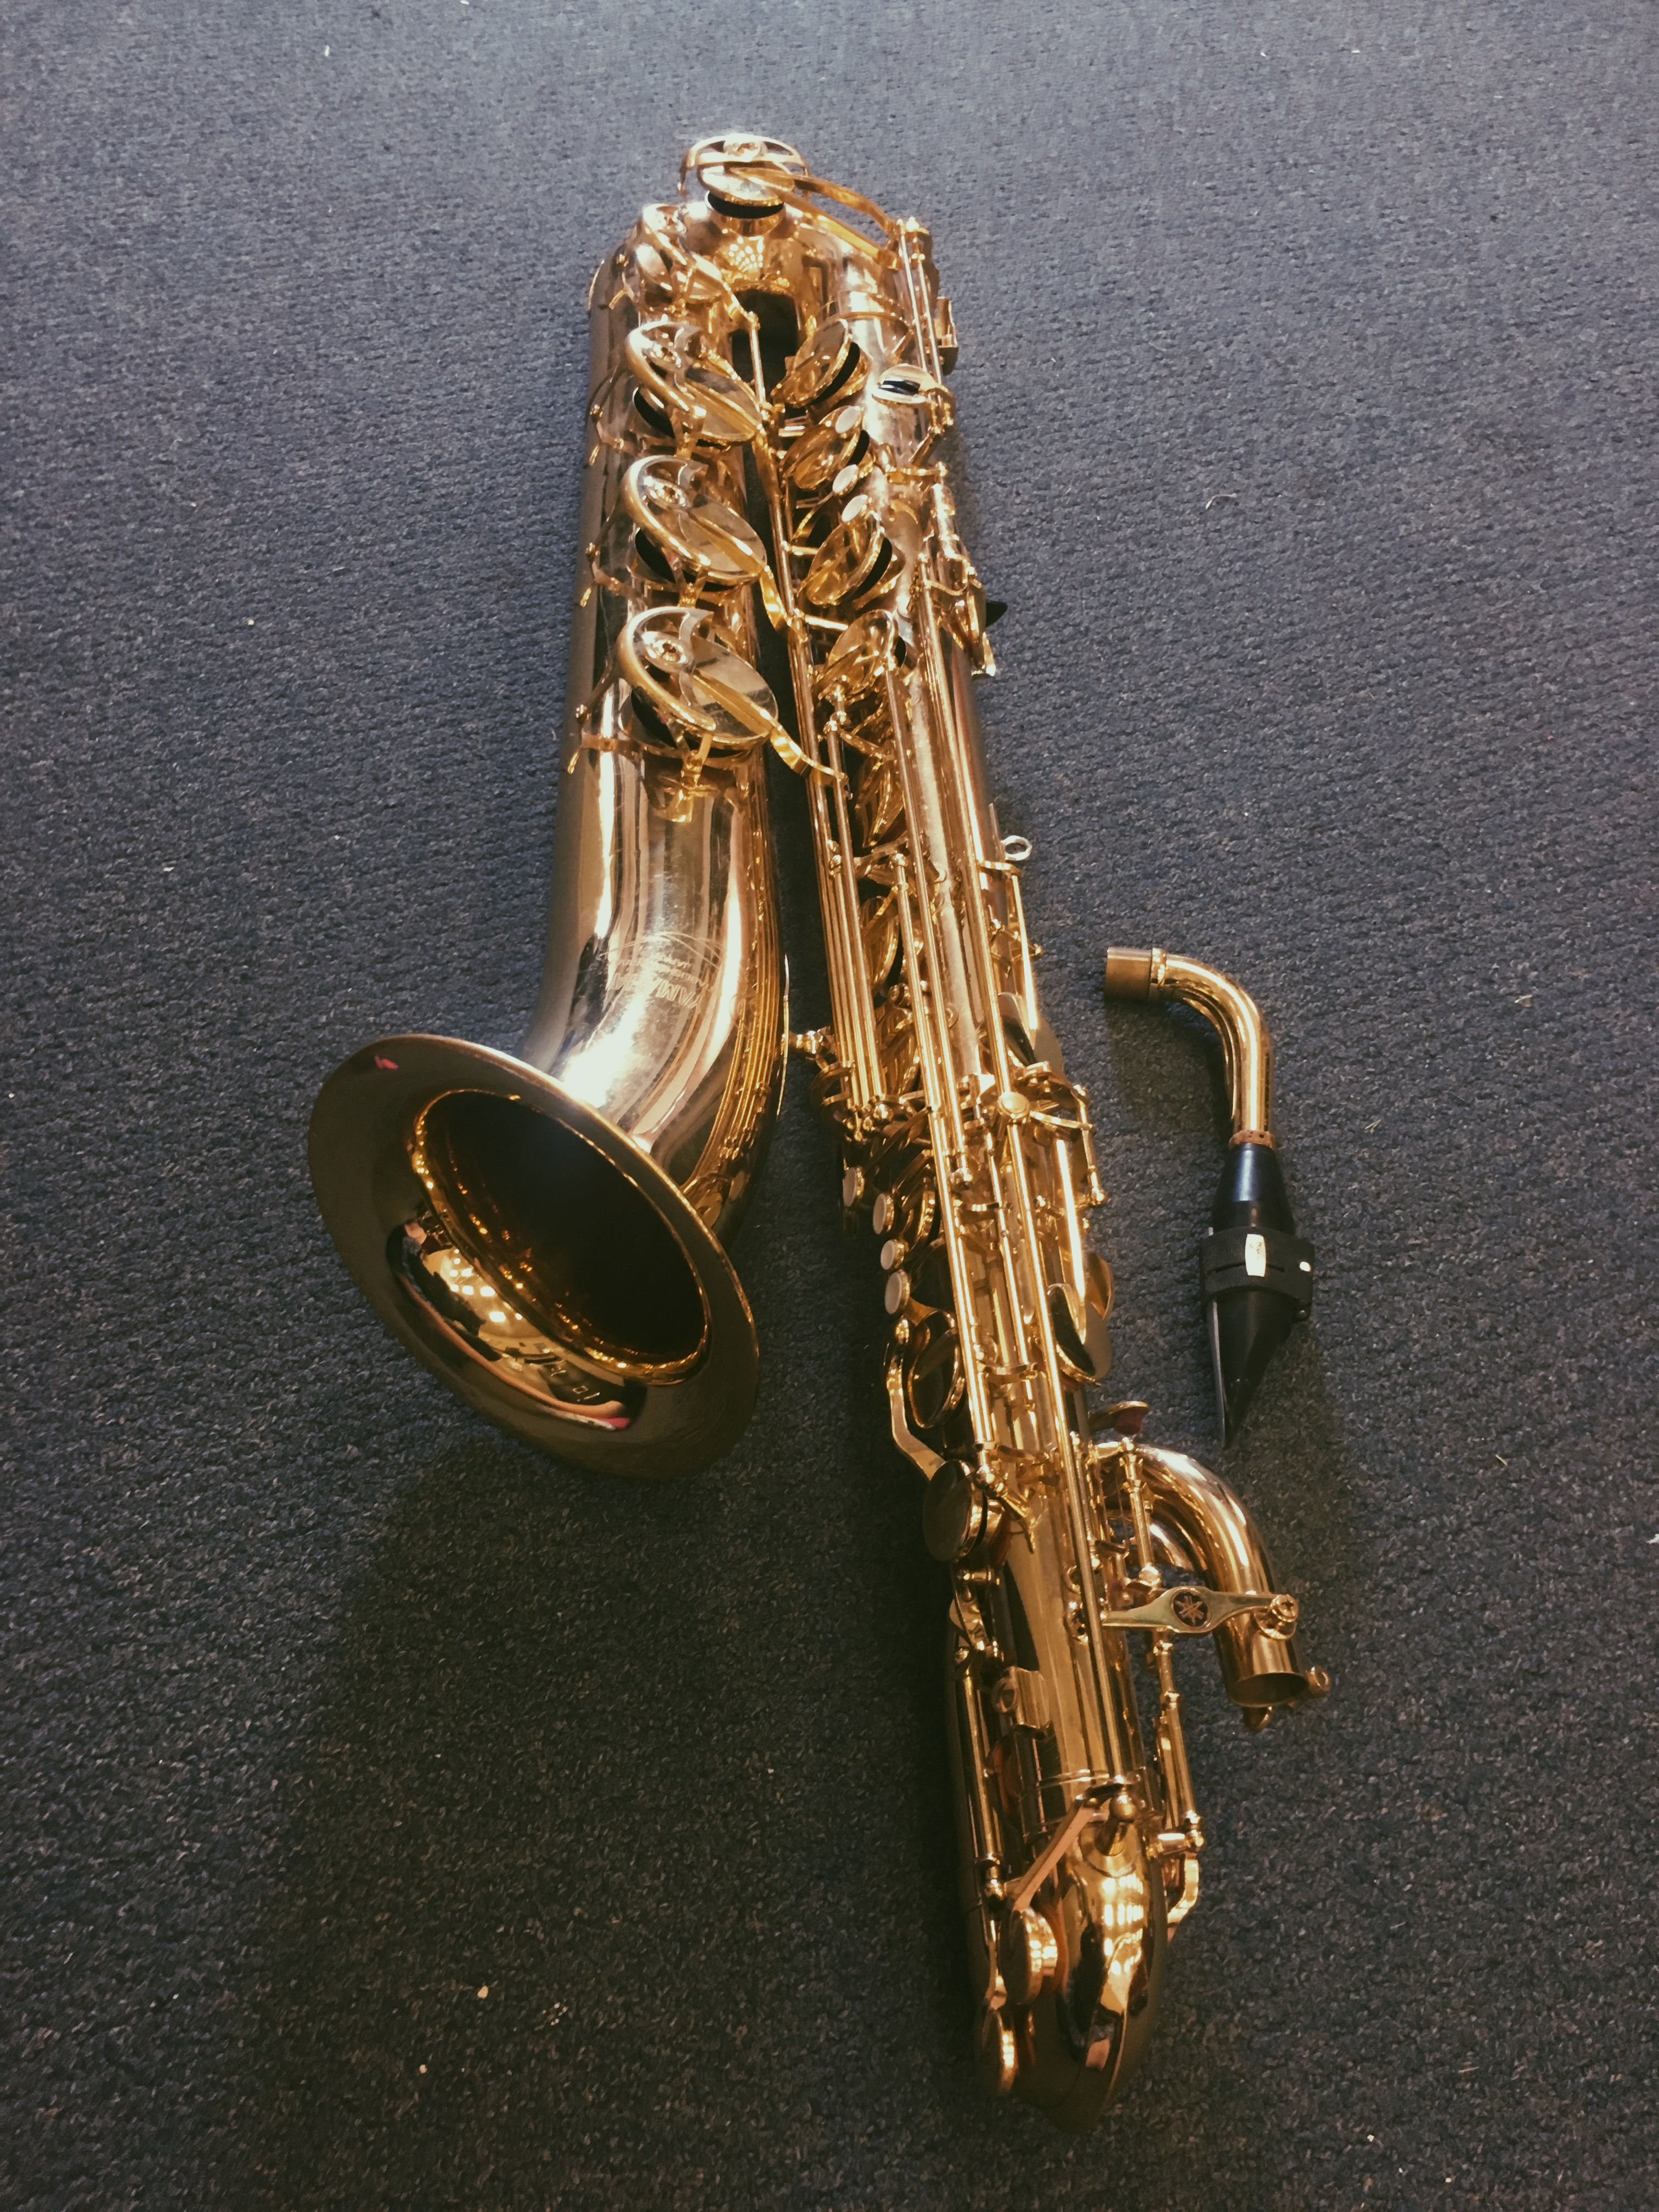 Picture of Connecting the Body of the Instrument to the Neck